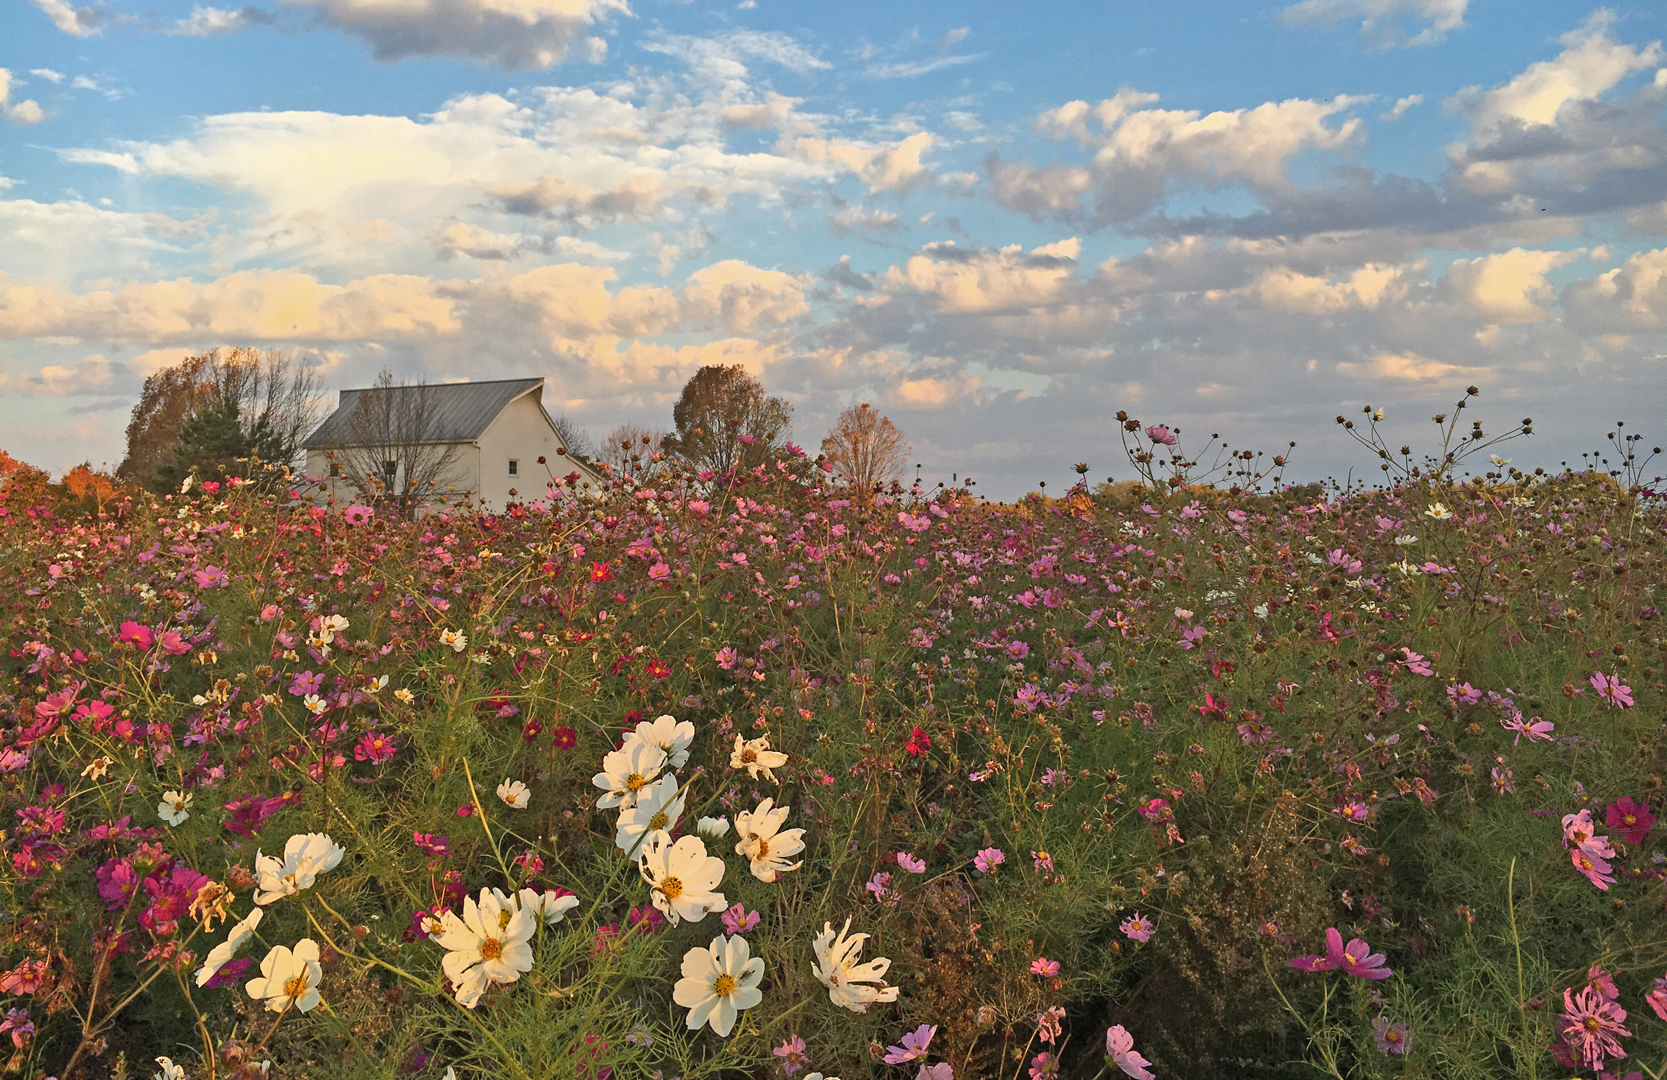 Picture this. Huge spread of pink and white flowers in a field at Homestead Metro Park.